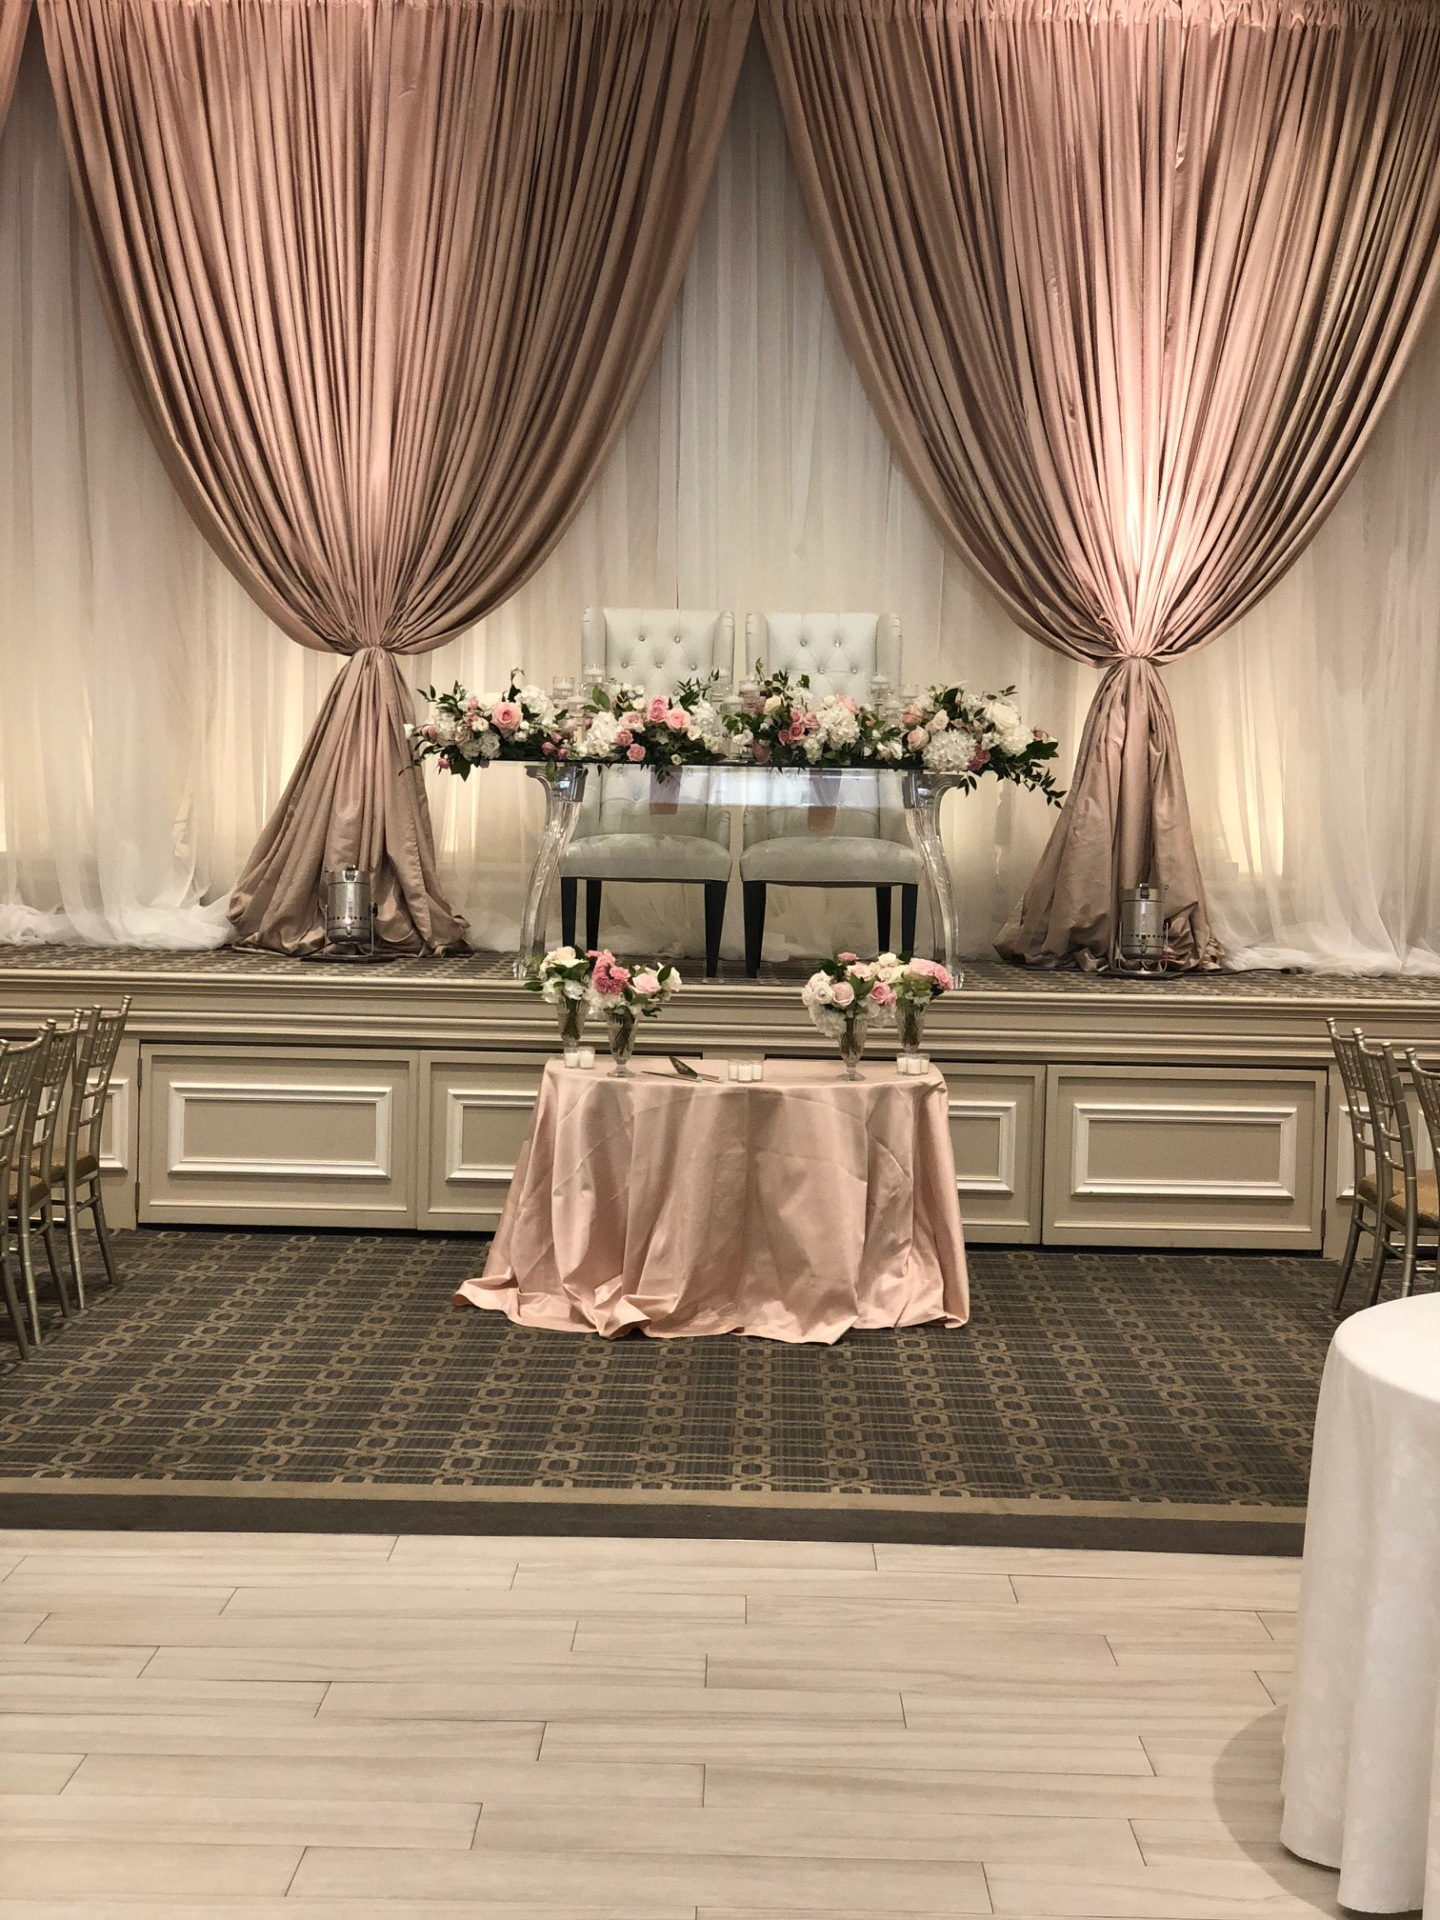 Head Table Decor, Blush Backdrop